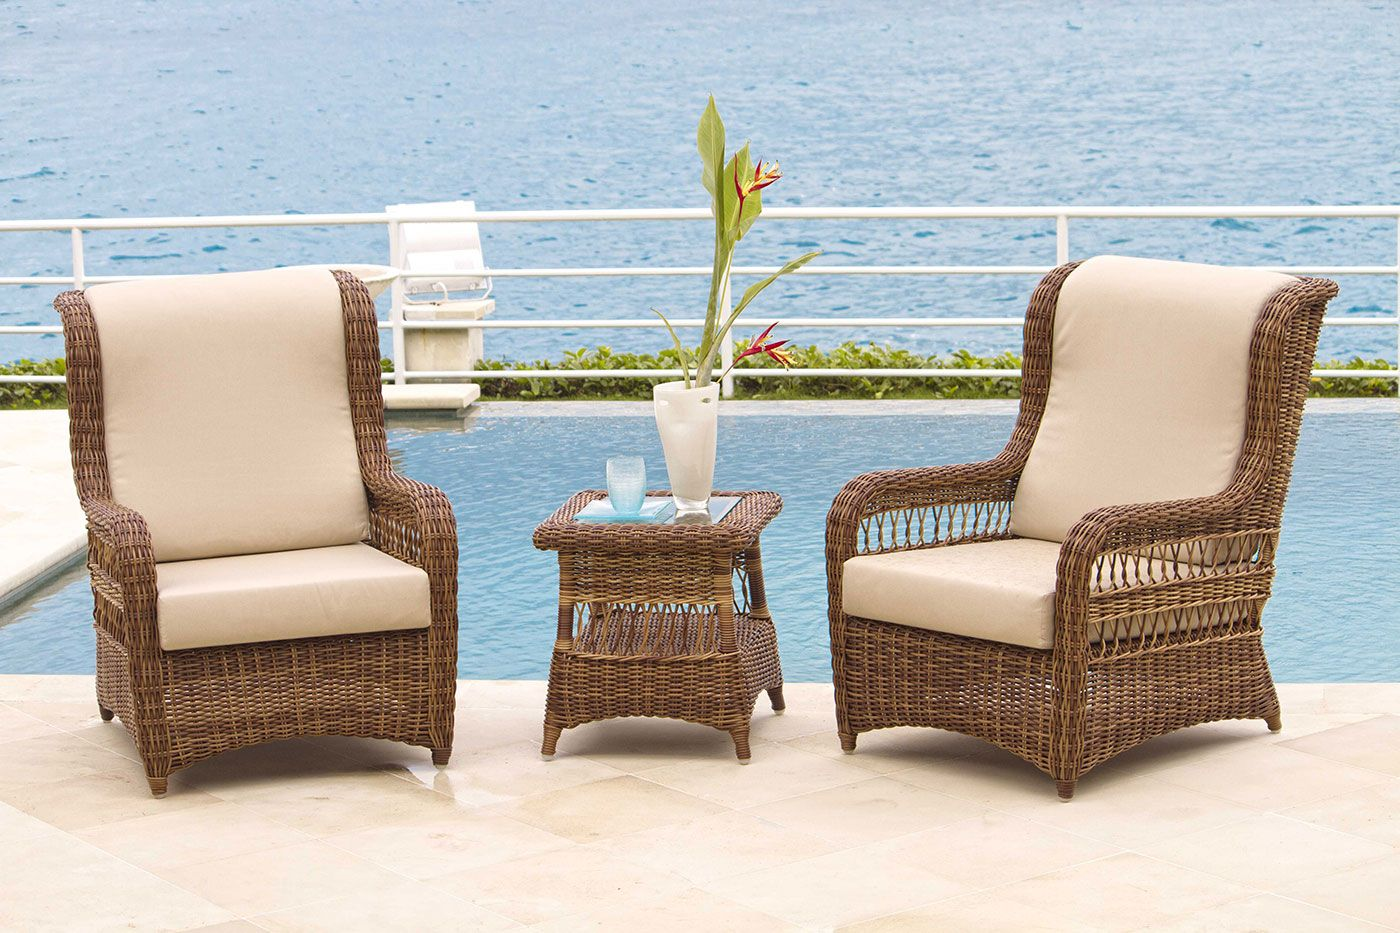 Cozy sofa set from fiore rosso skyline collection http www